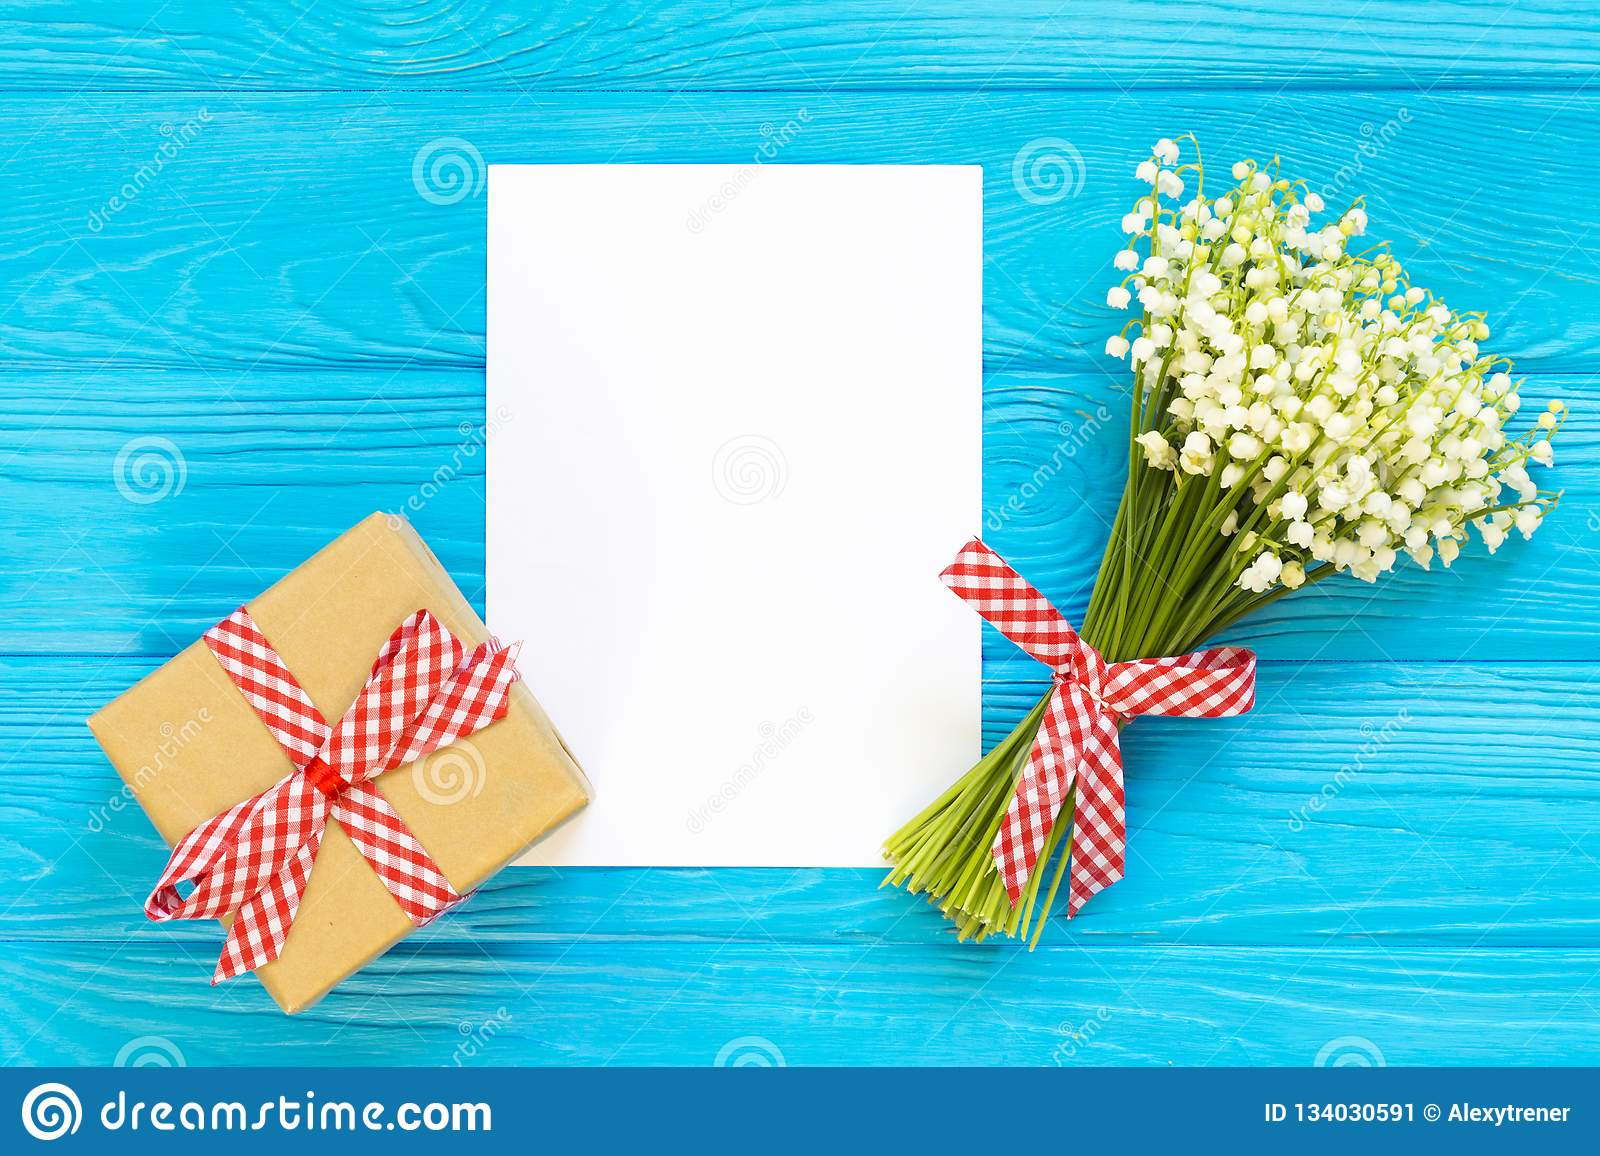 Womens Day Valentines Birthday Background Lily Of The Valley Envelope Packing Gifts Flat Lay Top View